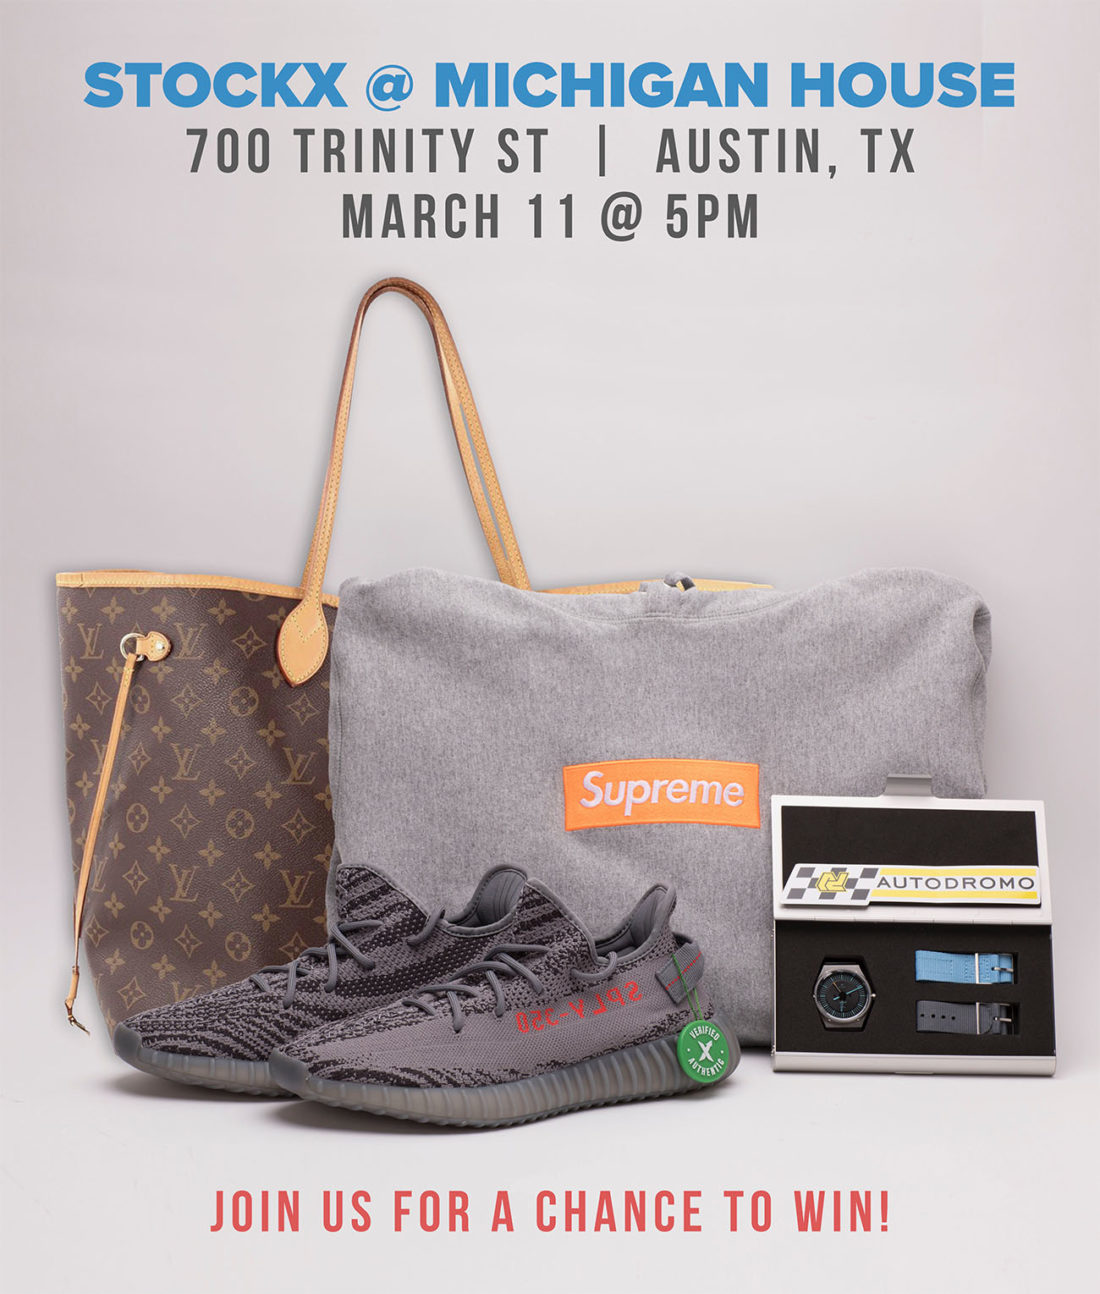 StockX at SXSW: Free prizes, a karaoke RV, and more.